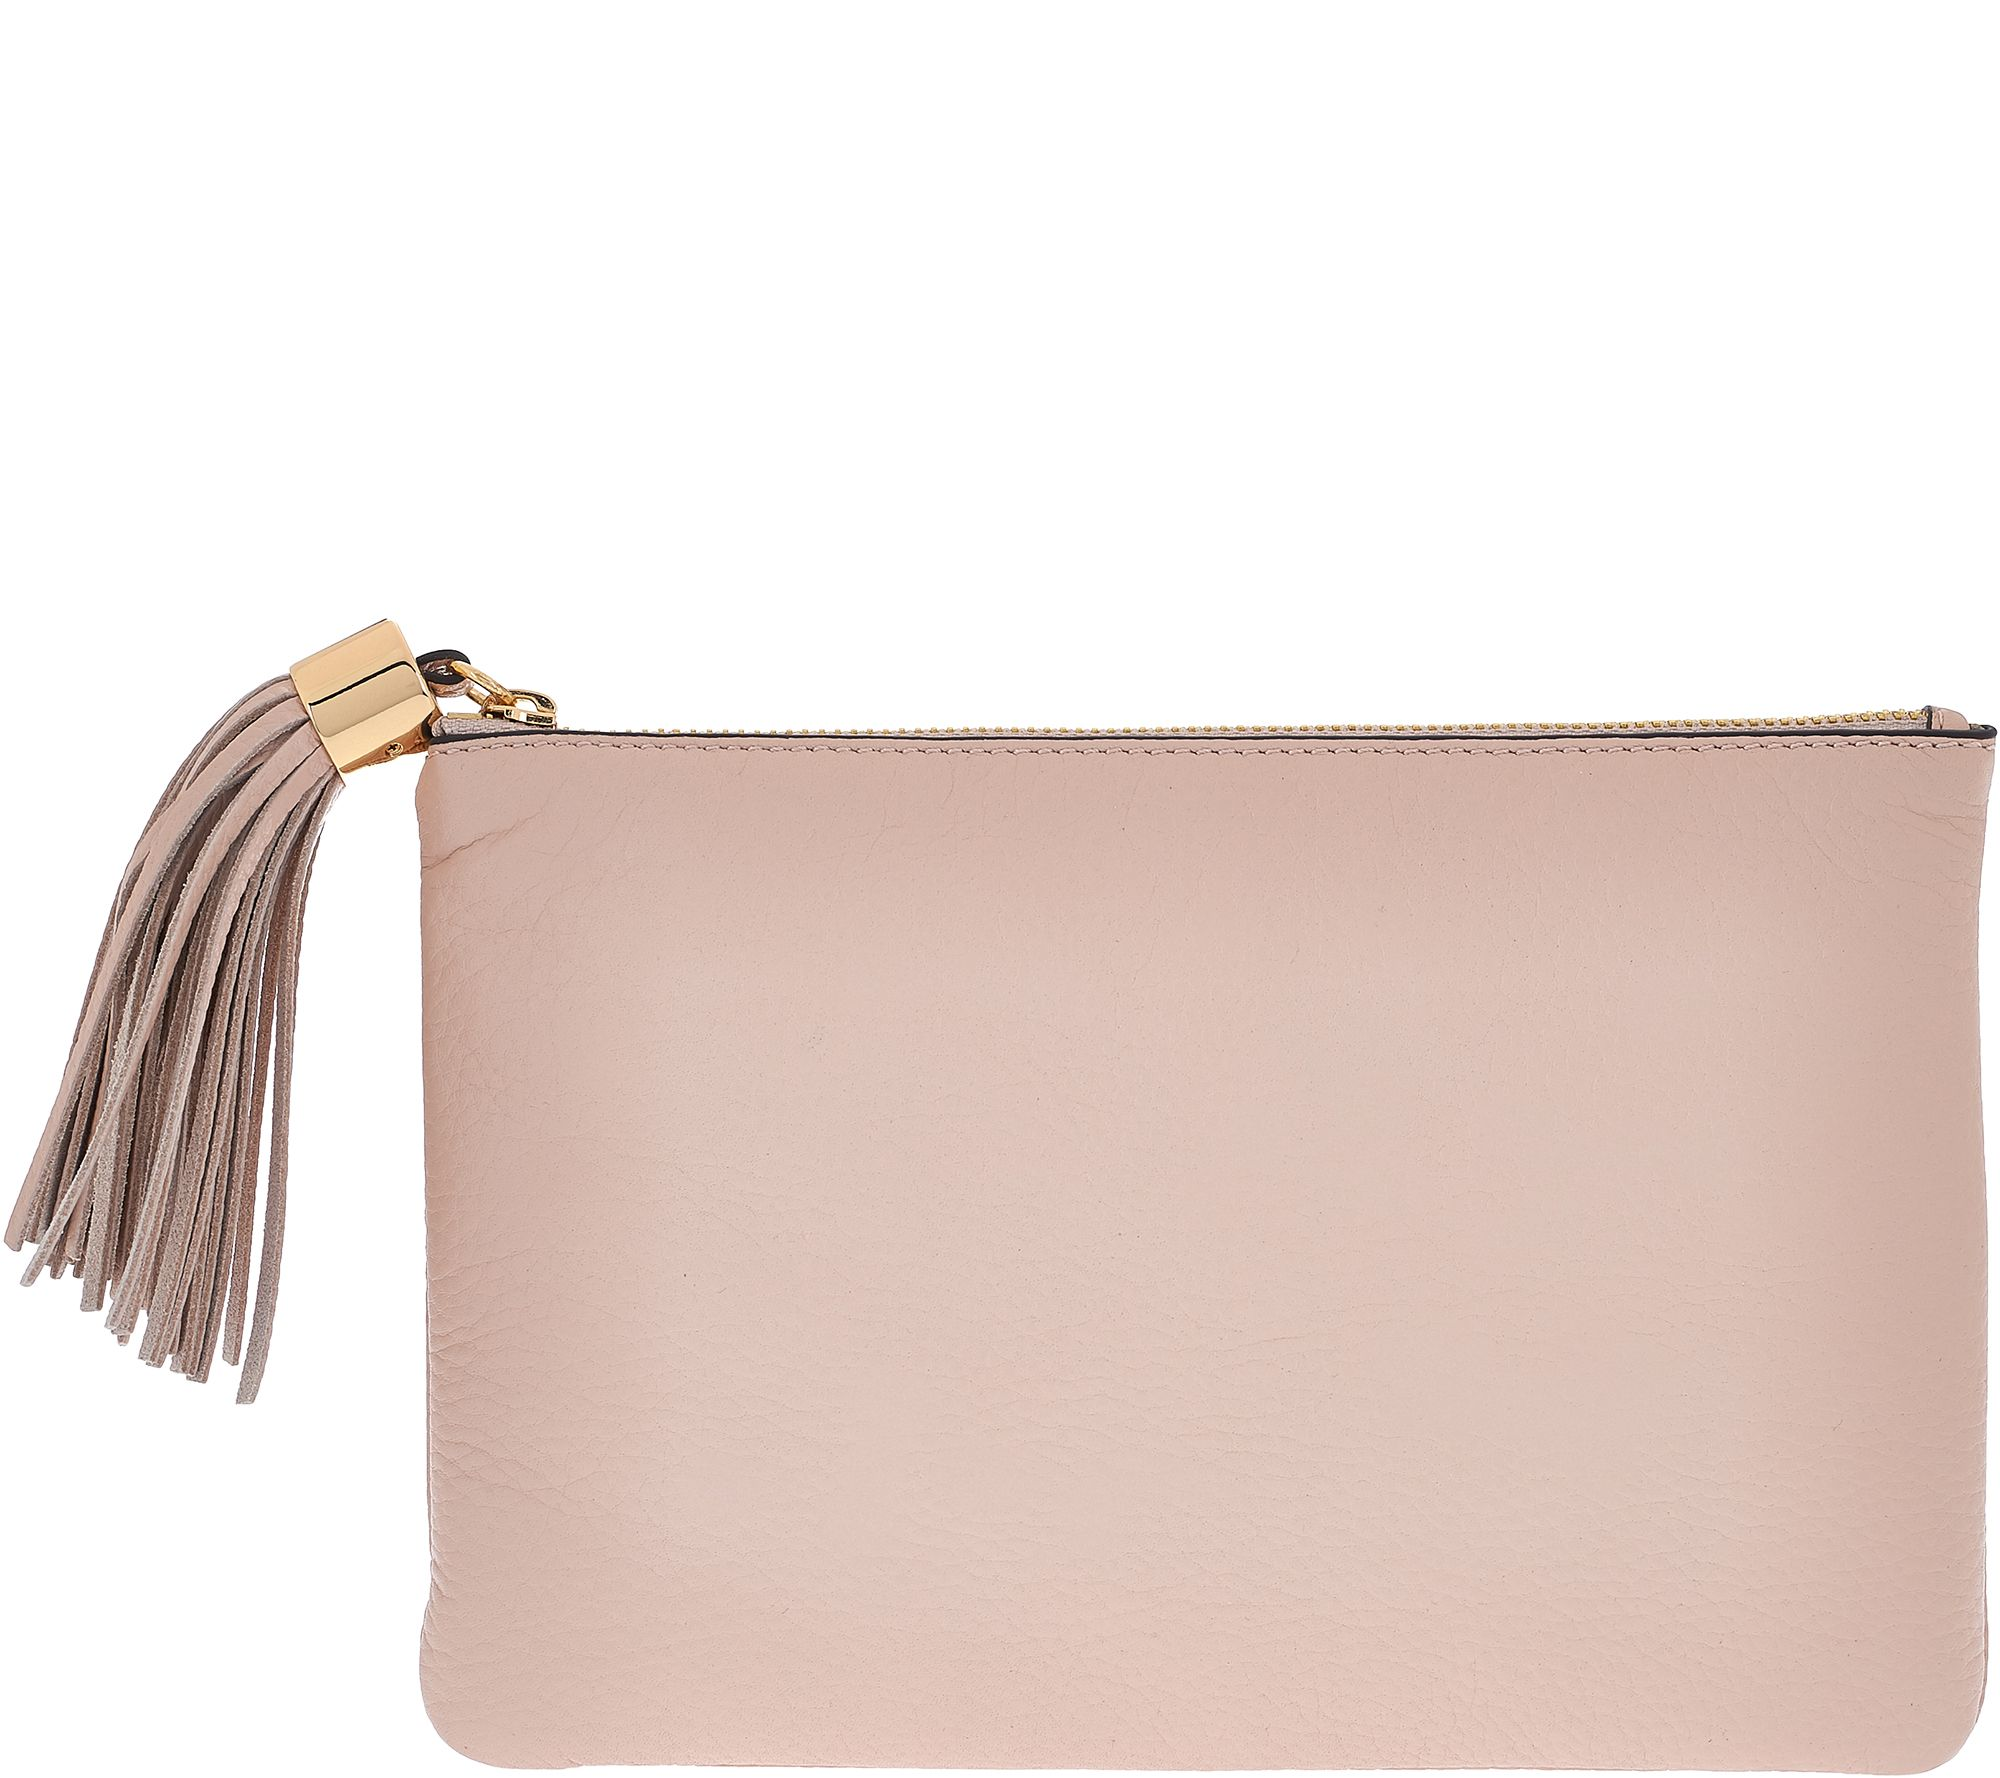 G.I.L.I. Leather Pouch with Tassel - A273689